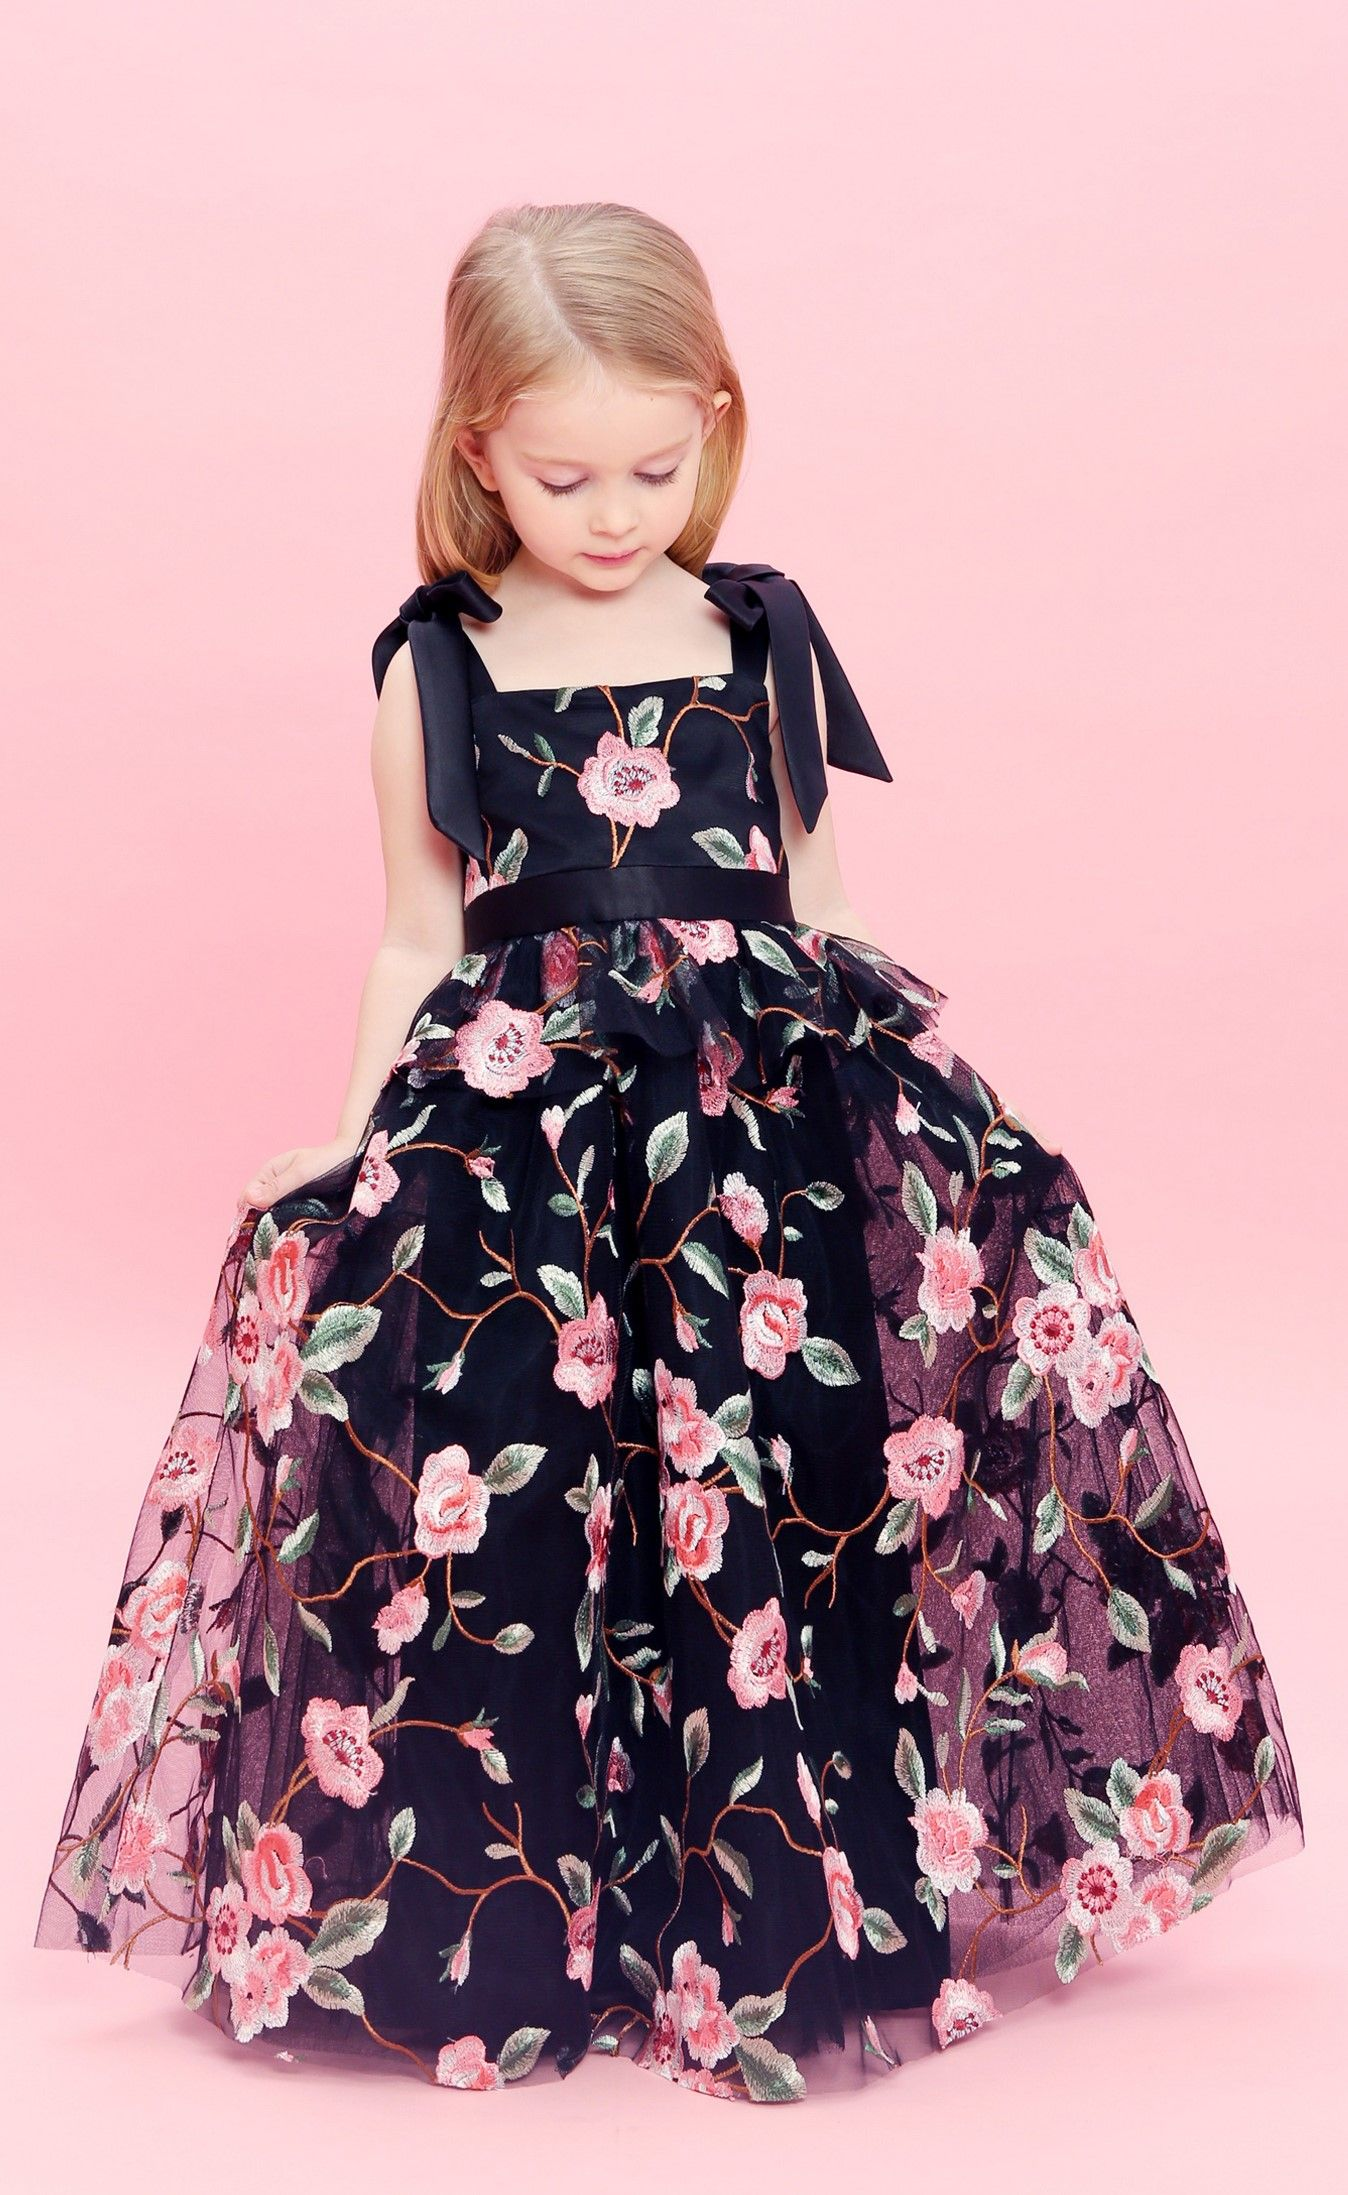 DORIAN HO Baby Doll FW 6/6  Spring outfits kids, Dresses kids